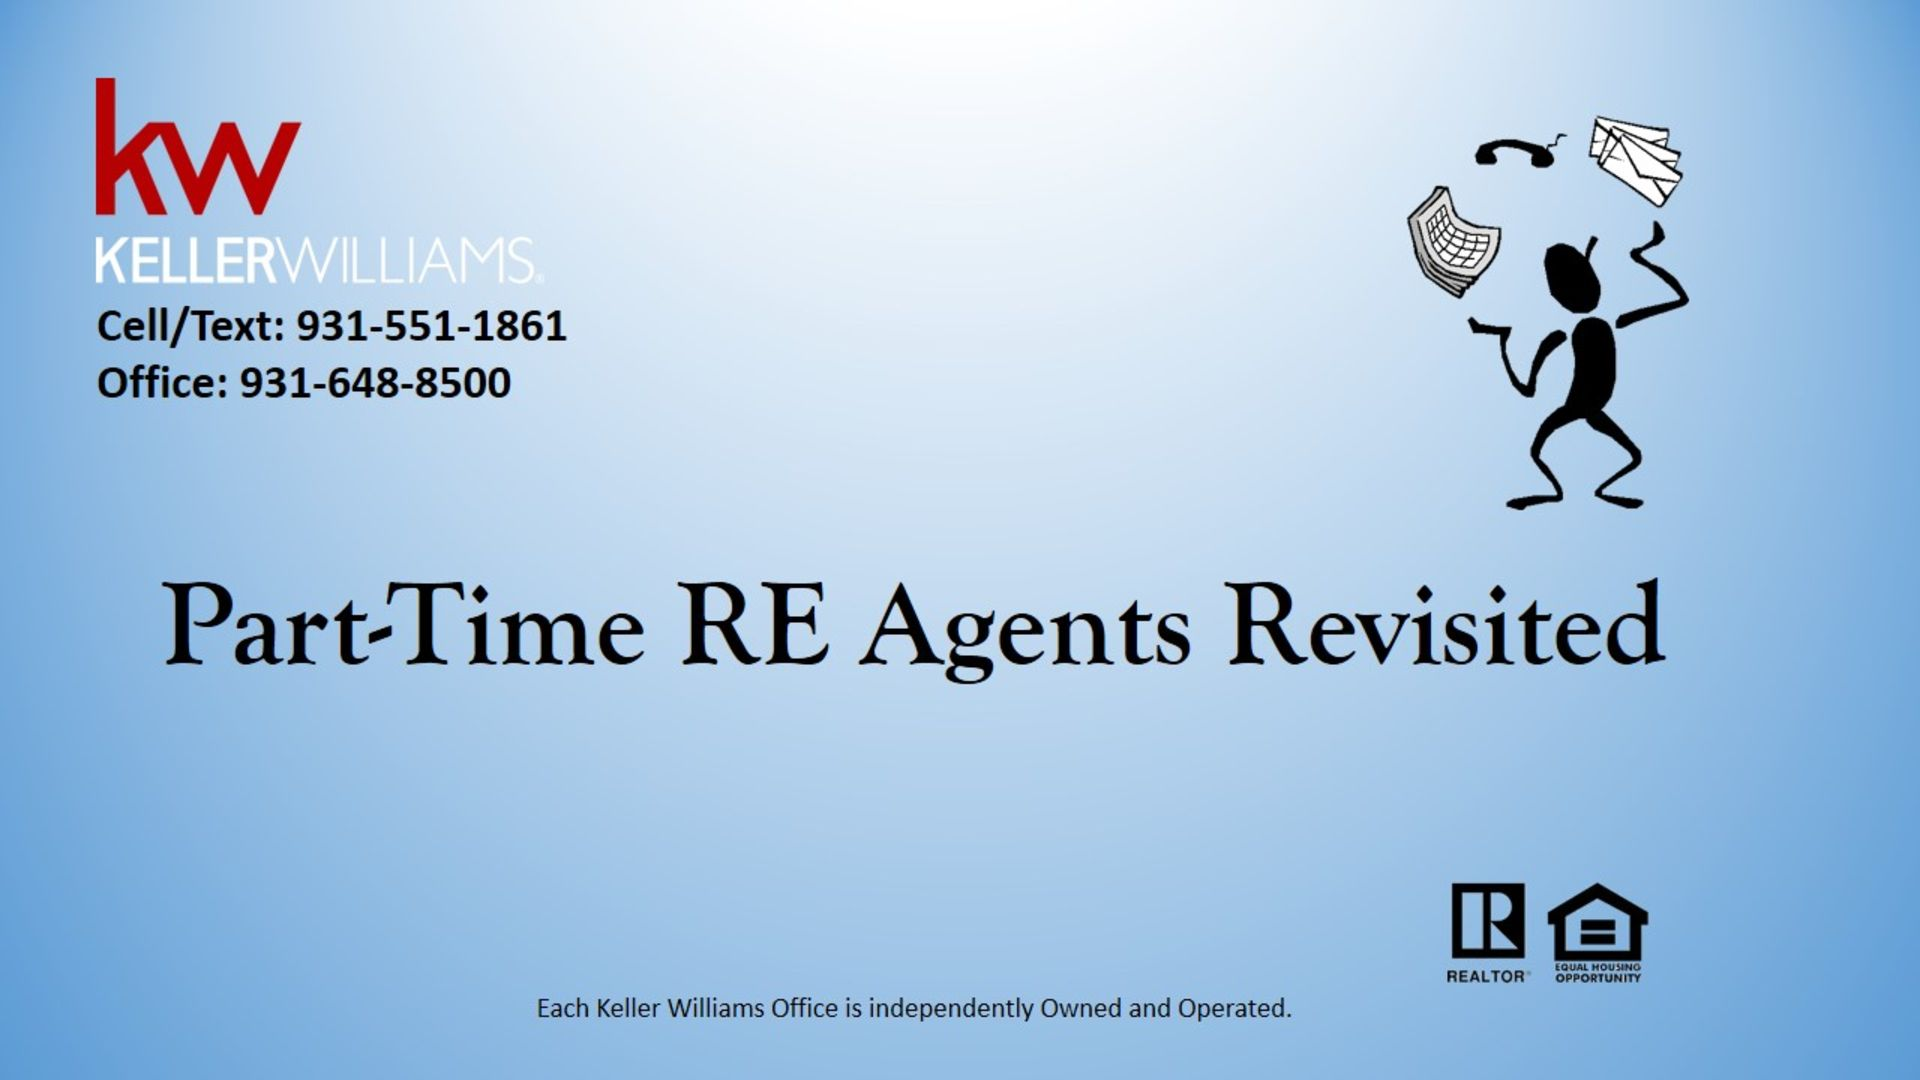 Part-Time RE Agents Revisited